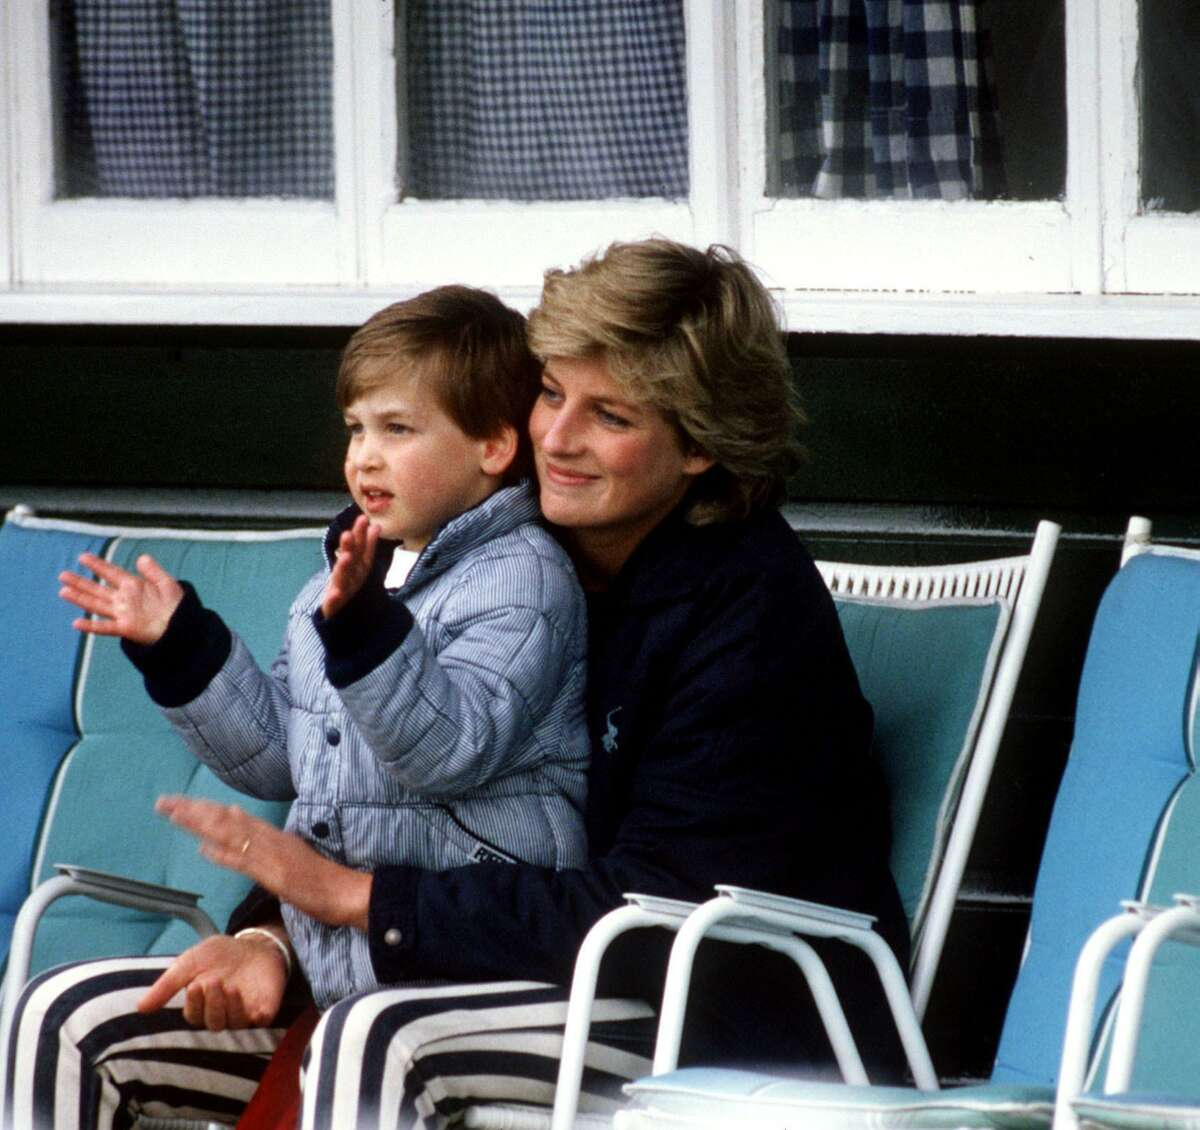 Prince William sits on his mother's lap in a photo that is shown on the HBO film about Princess Diana.